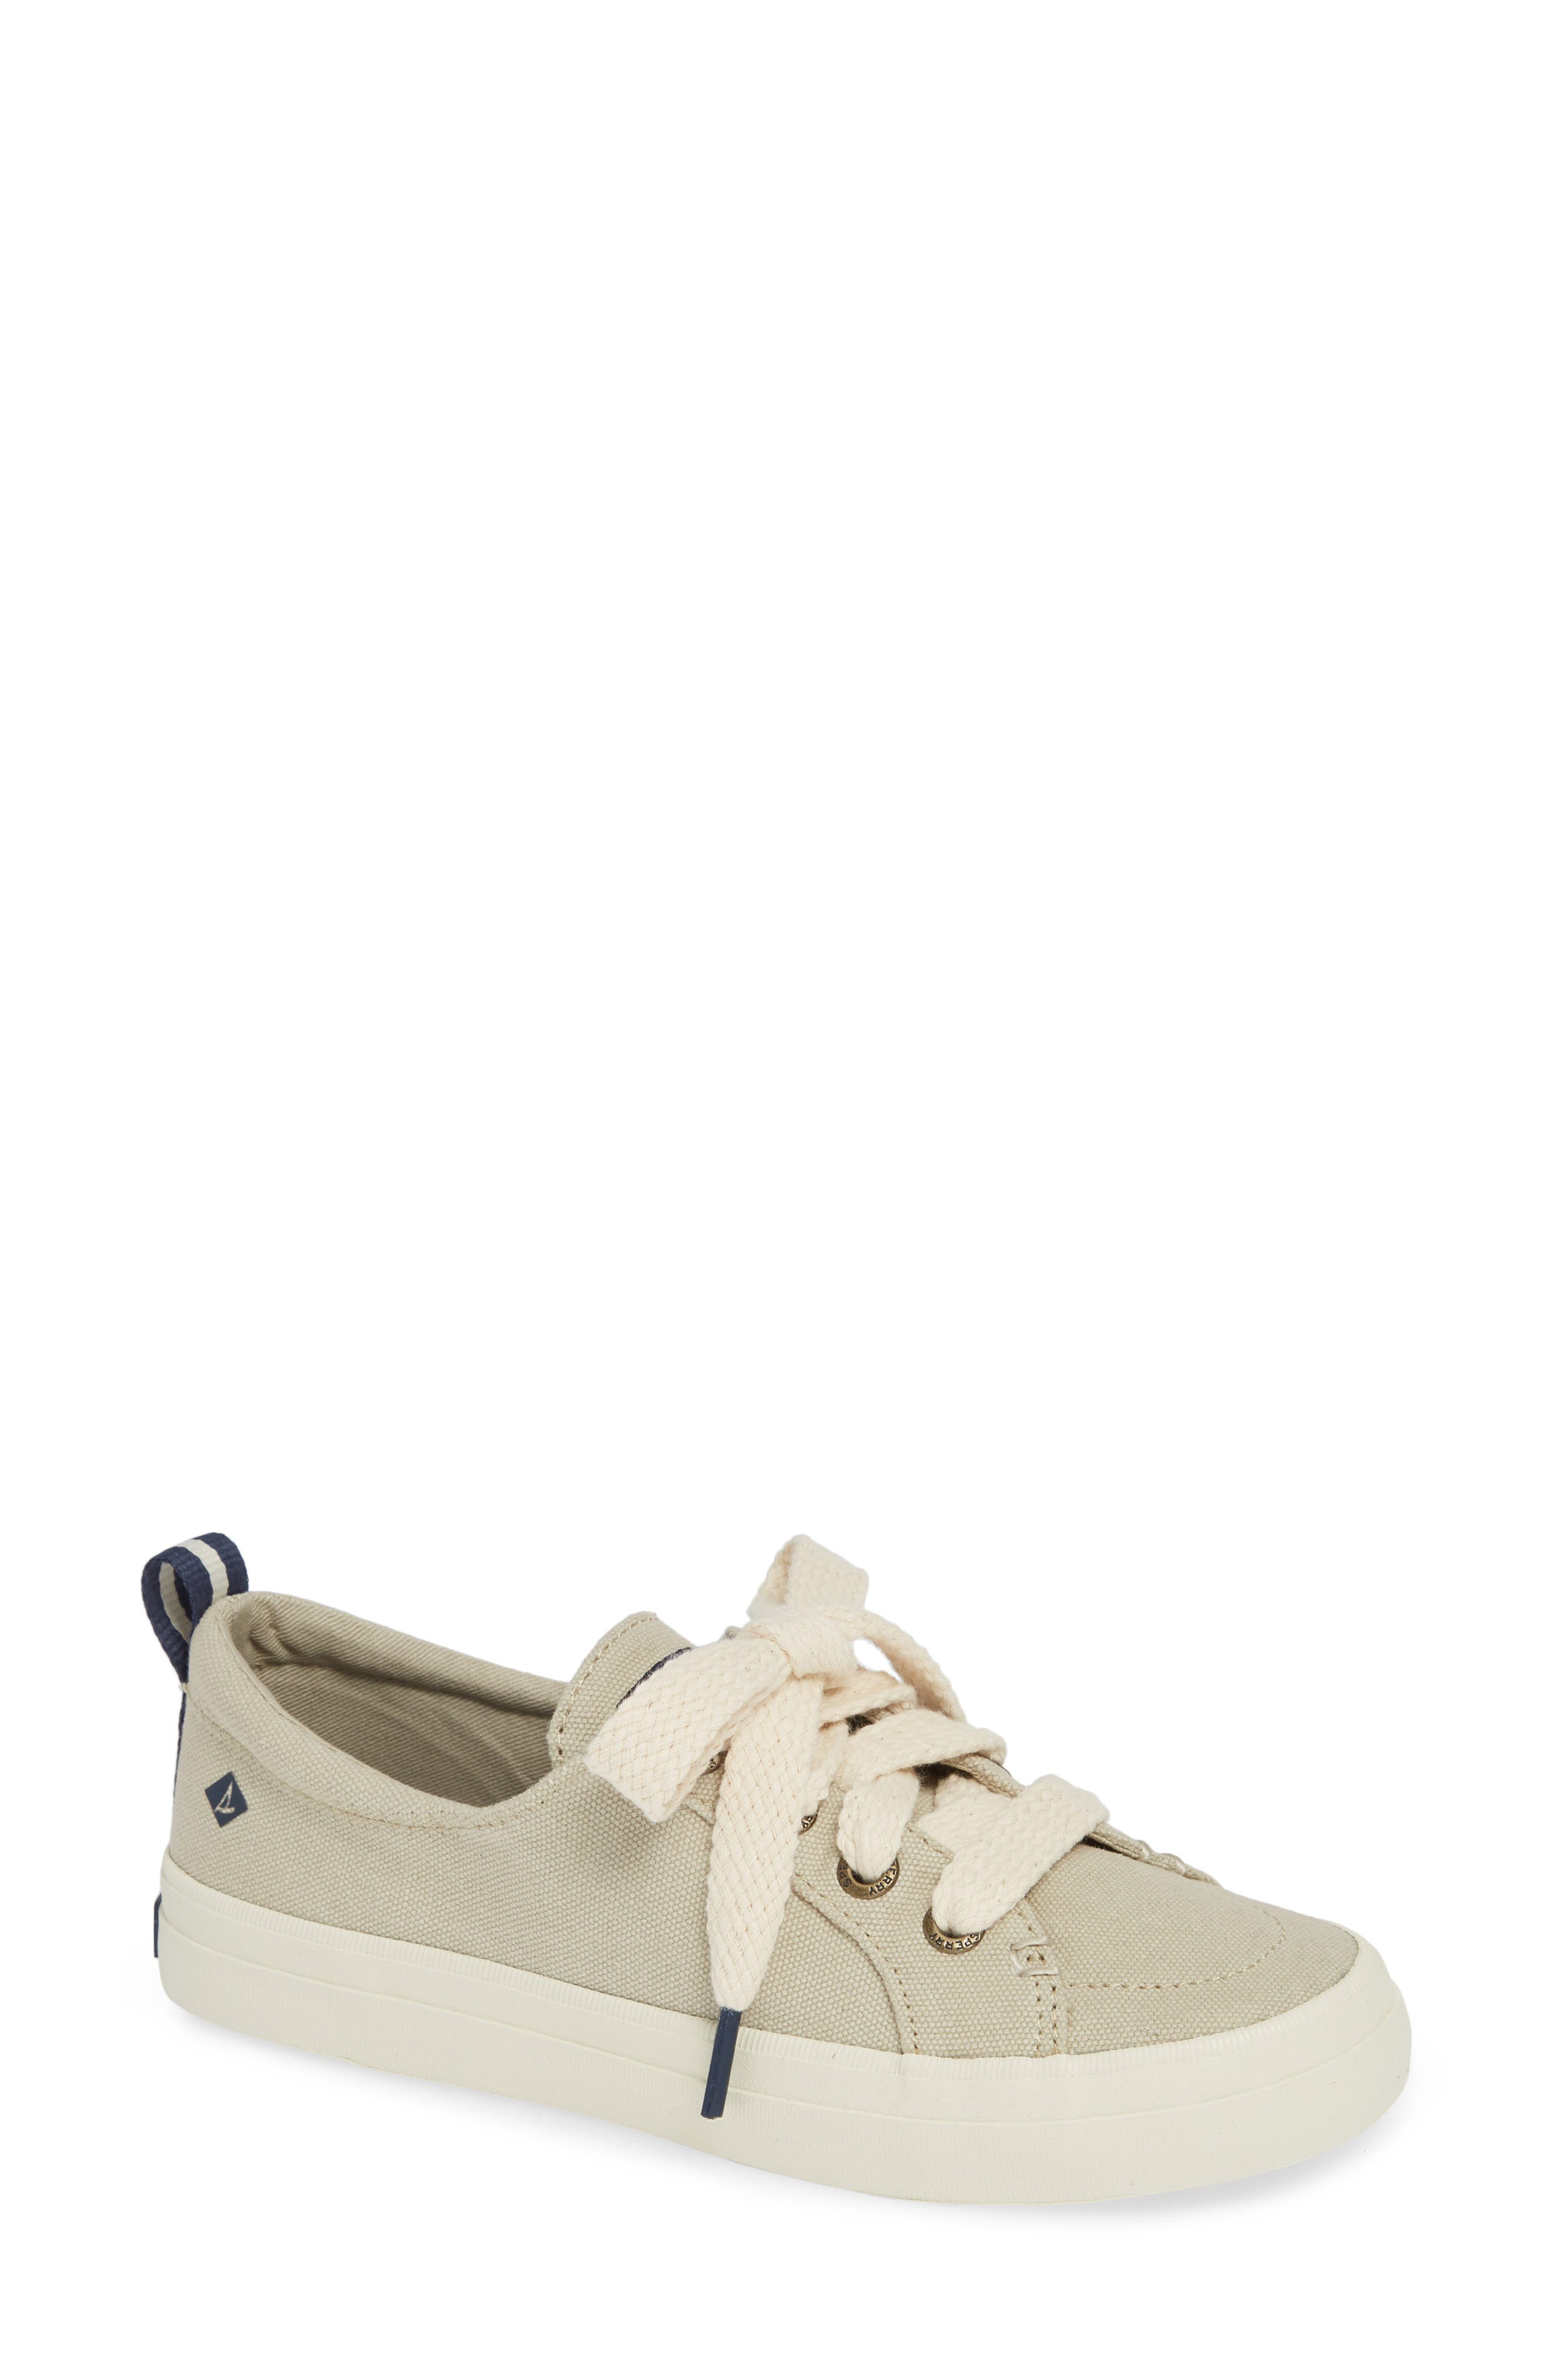 Crest Vibe Sneaker,                             Main thumbnail 1, color,                             IVORY CANVAS